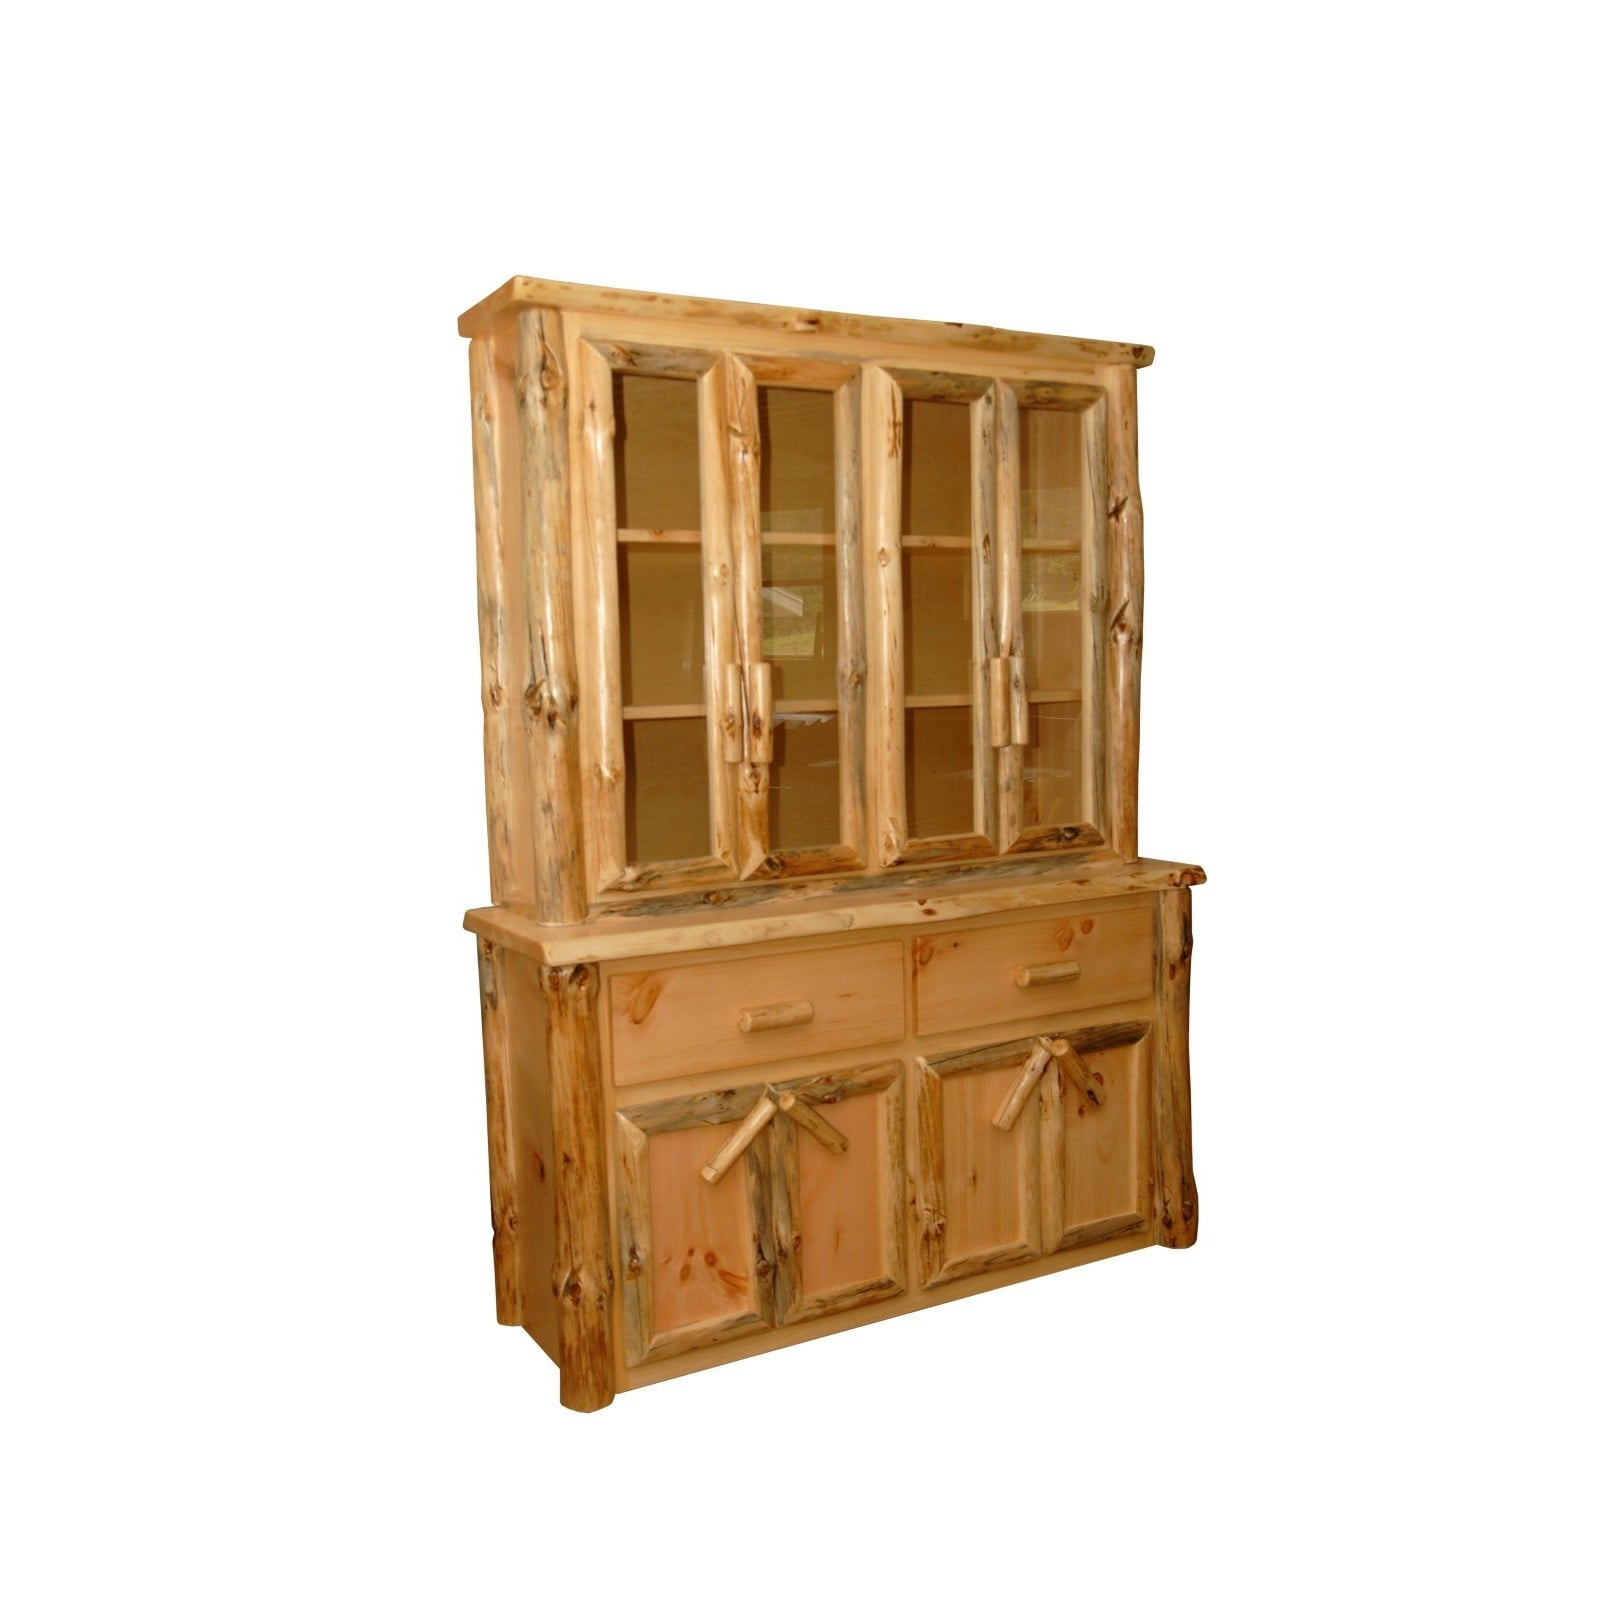 Shop rustic pine log buffet and hutch china cabinet free shipping today overstock com 13849582